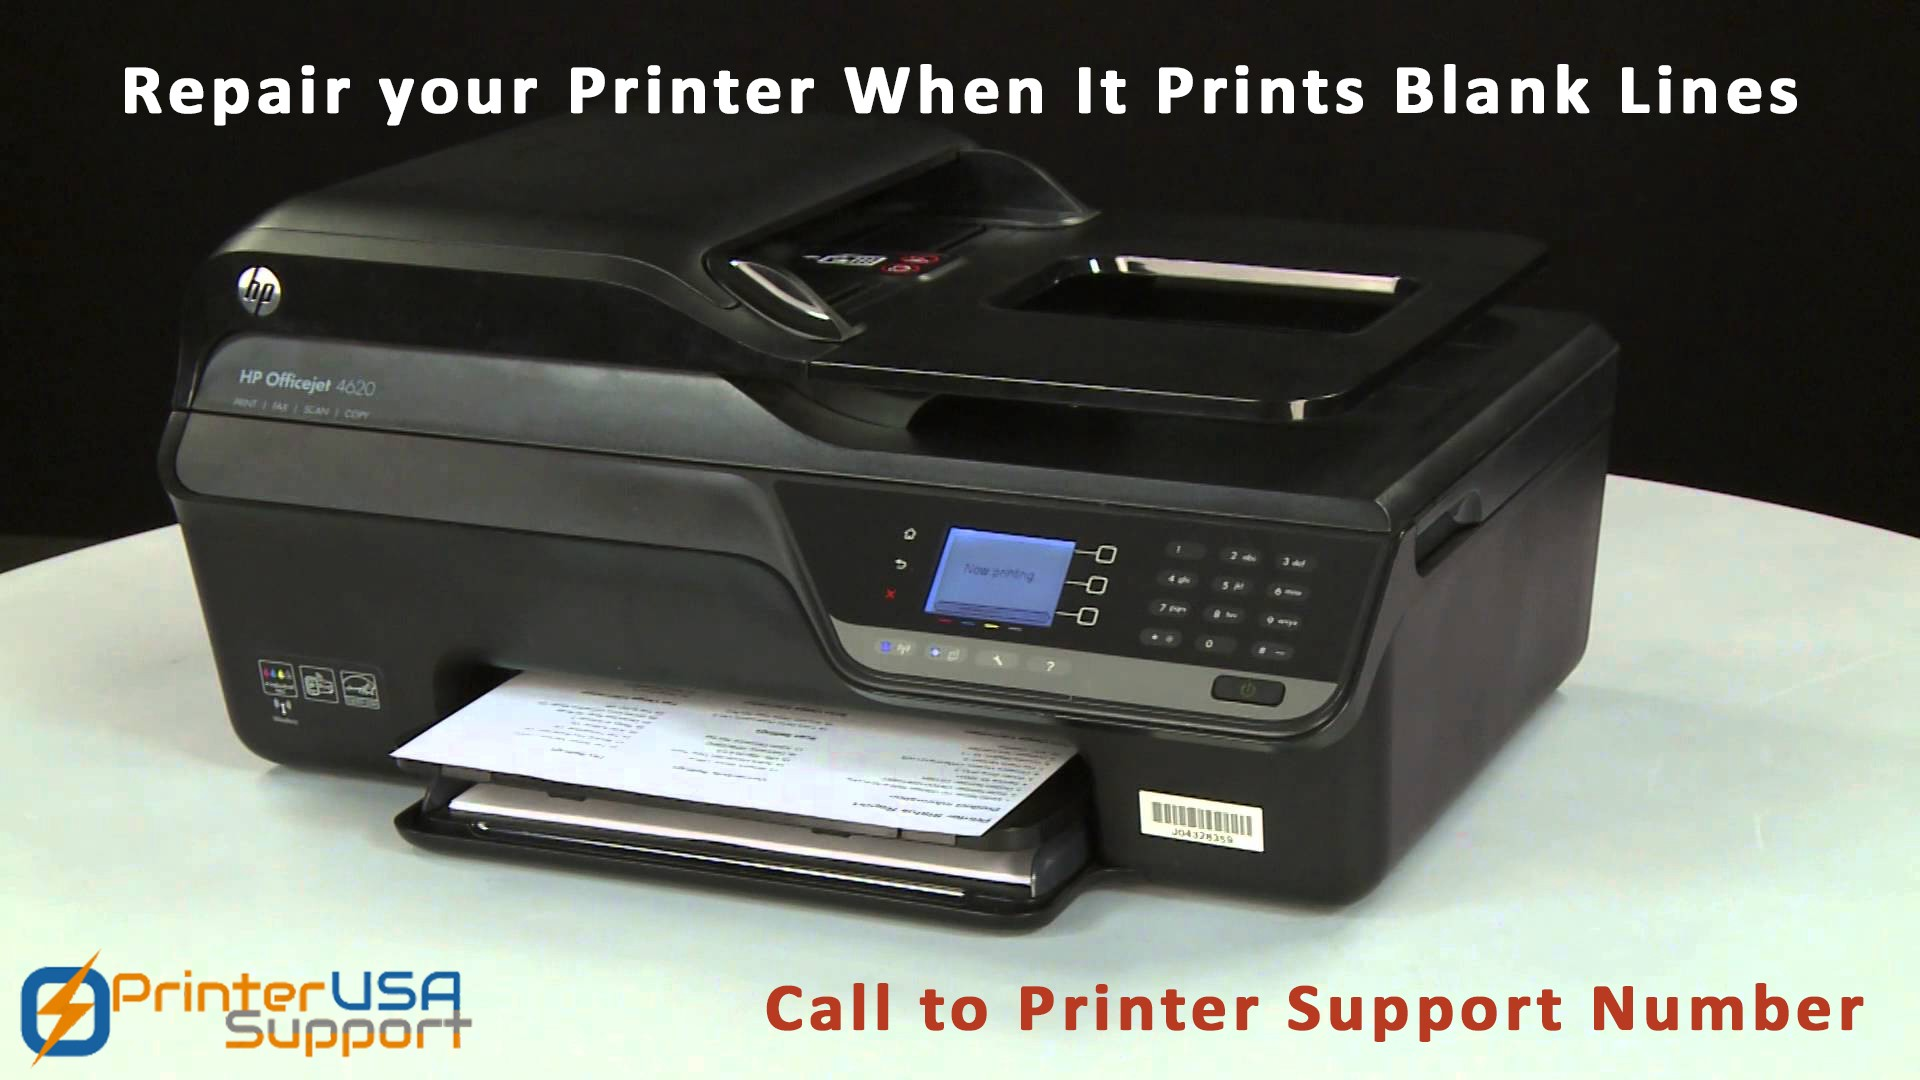 7 Ways to Repair your Canon Printer When It Prints Blank Lines